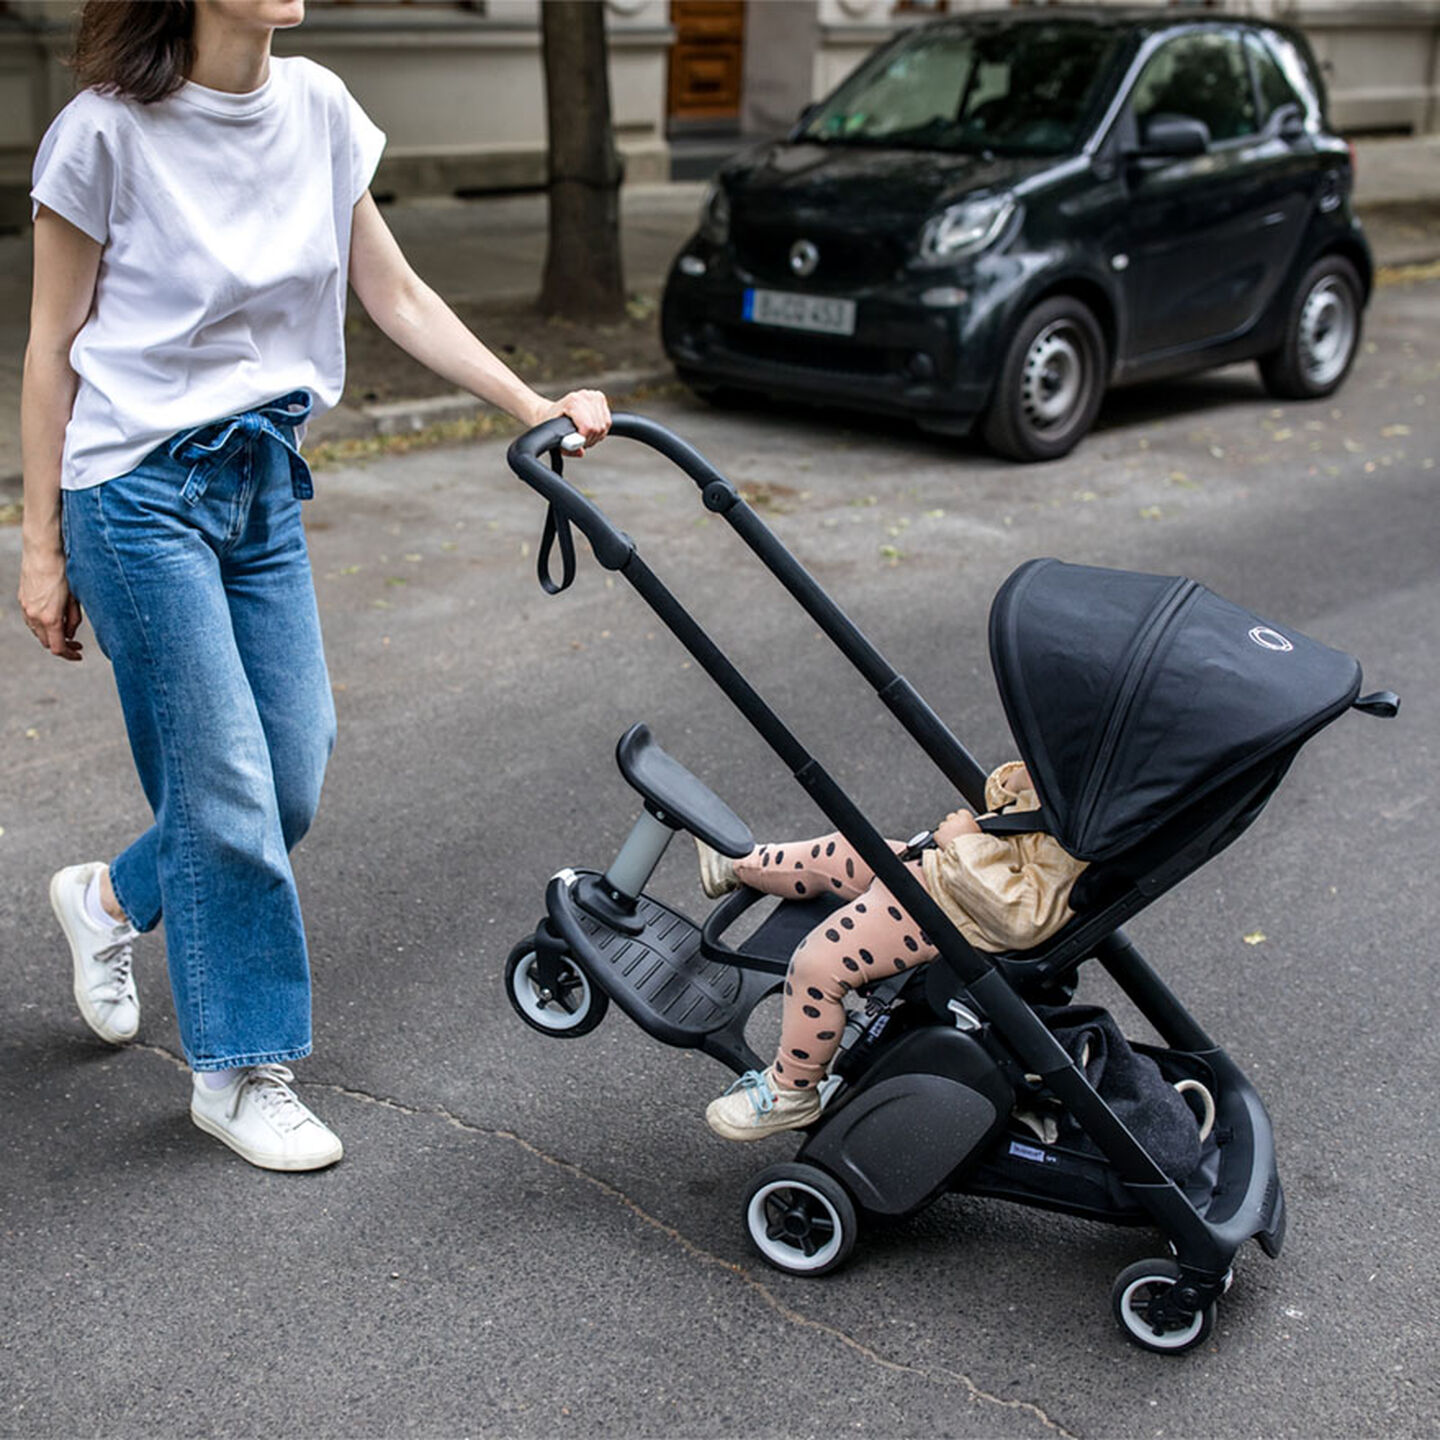 Woman pushing Ant stroller with one hand